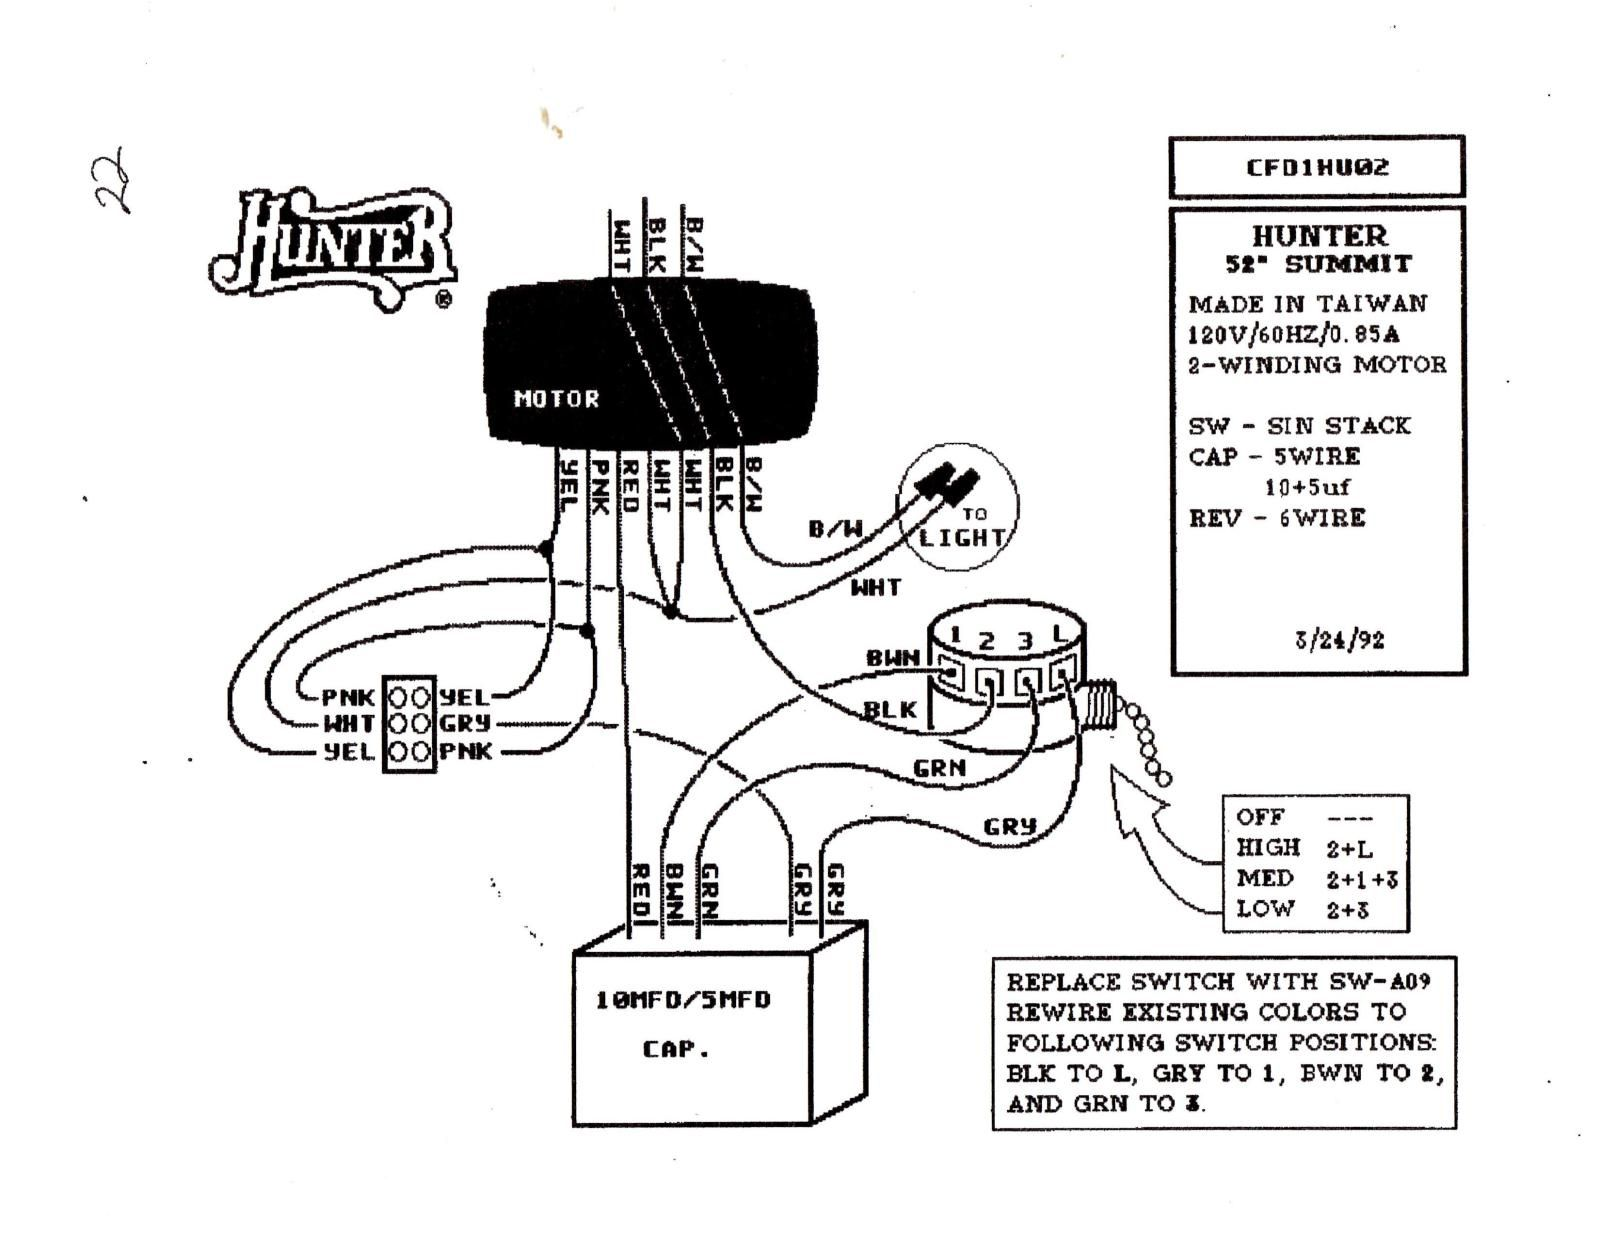 hunter ceiling fan remote wiring harness wiring diagram files westinghouse ceiling fan remote wiring [ 1600 x 1236 Pixel ]